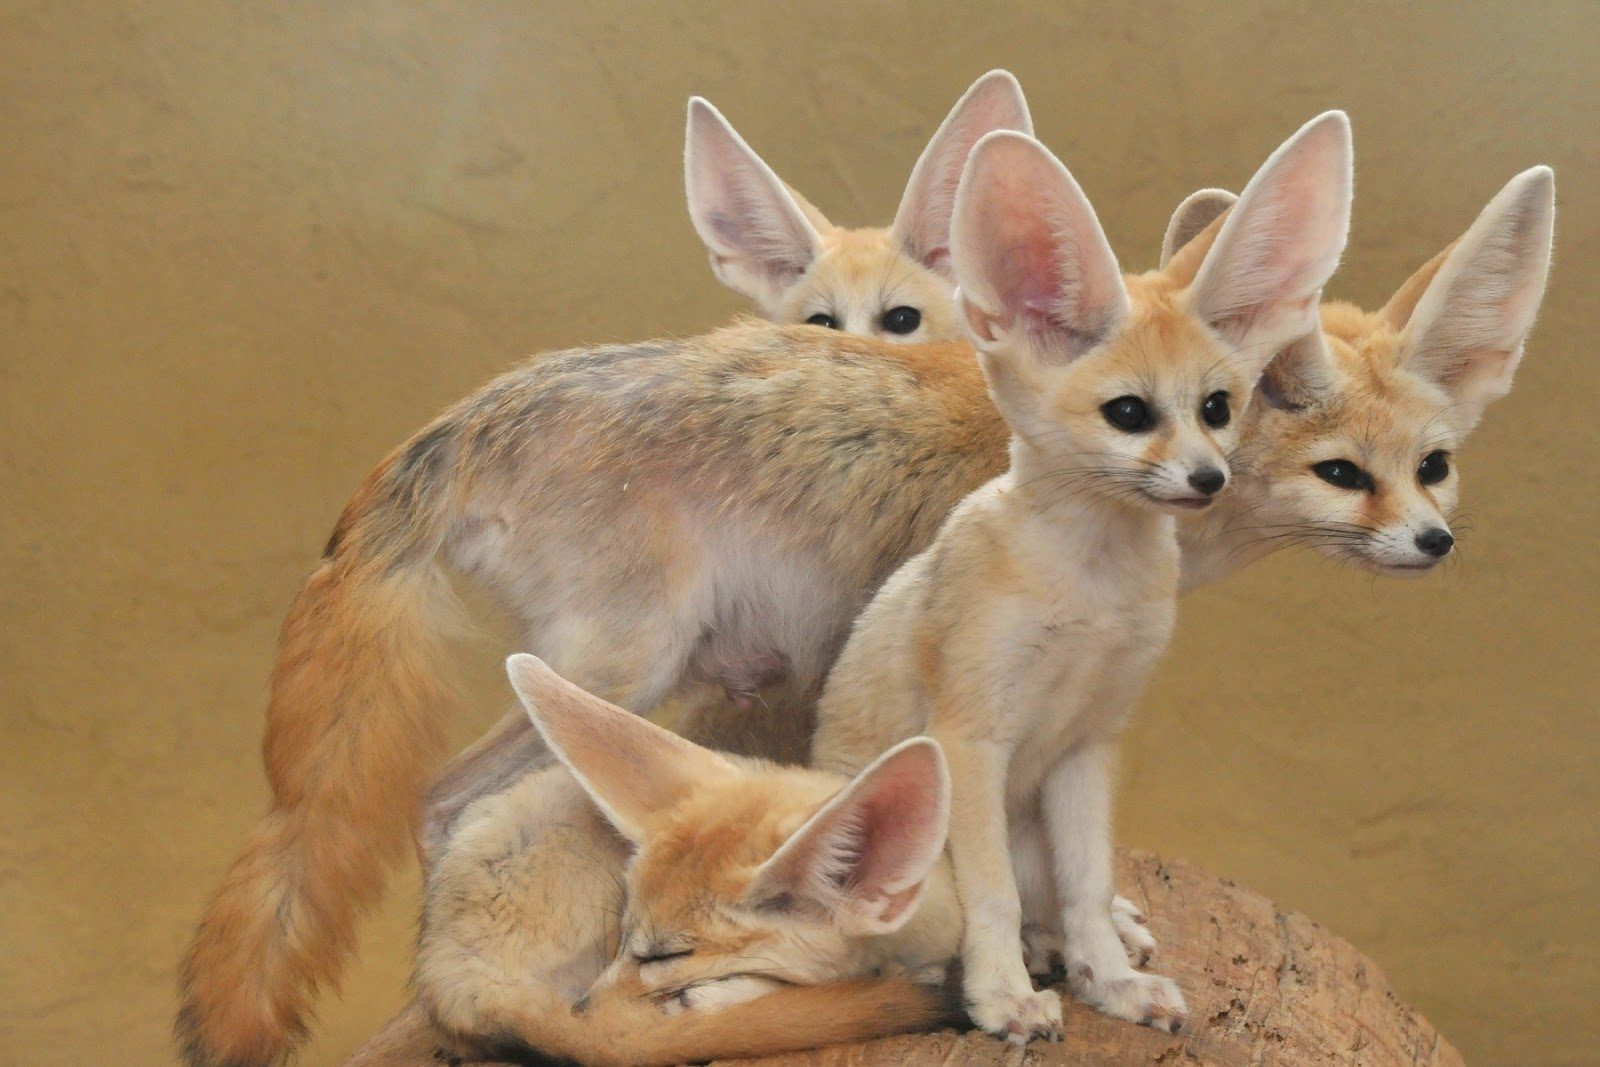 All About Animal Wildlife: Fennec Foxe Facts Photos-Images